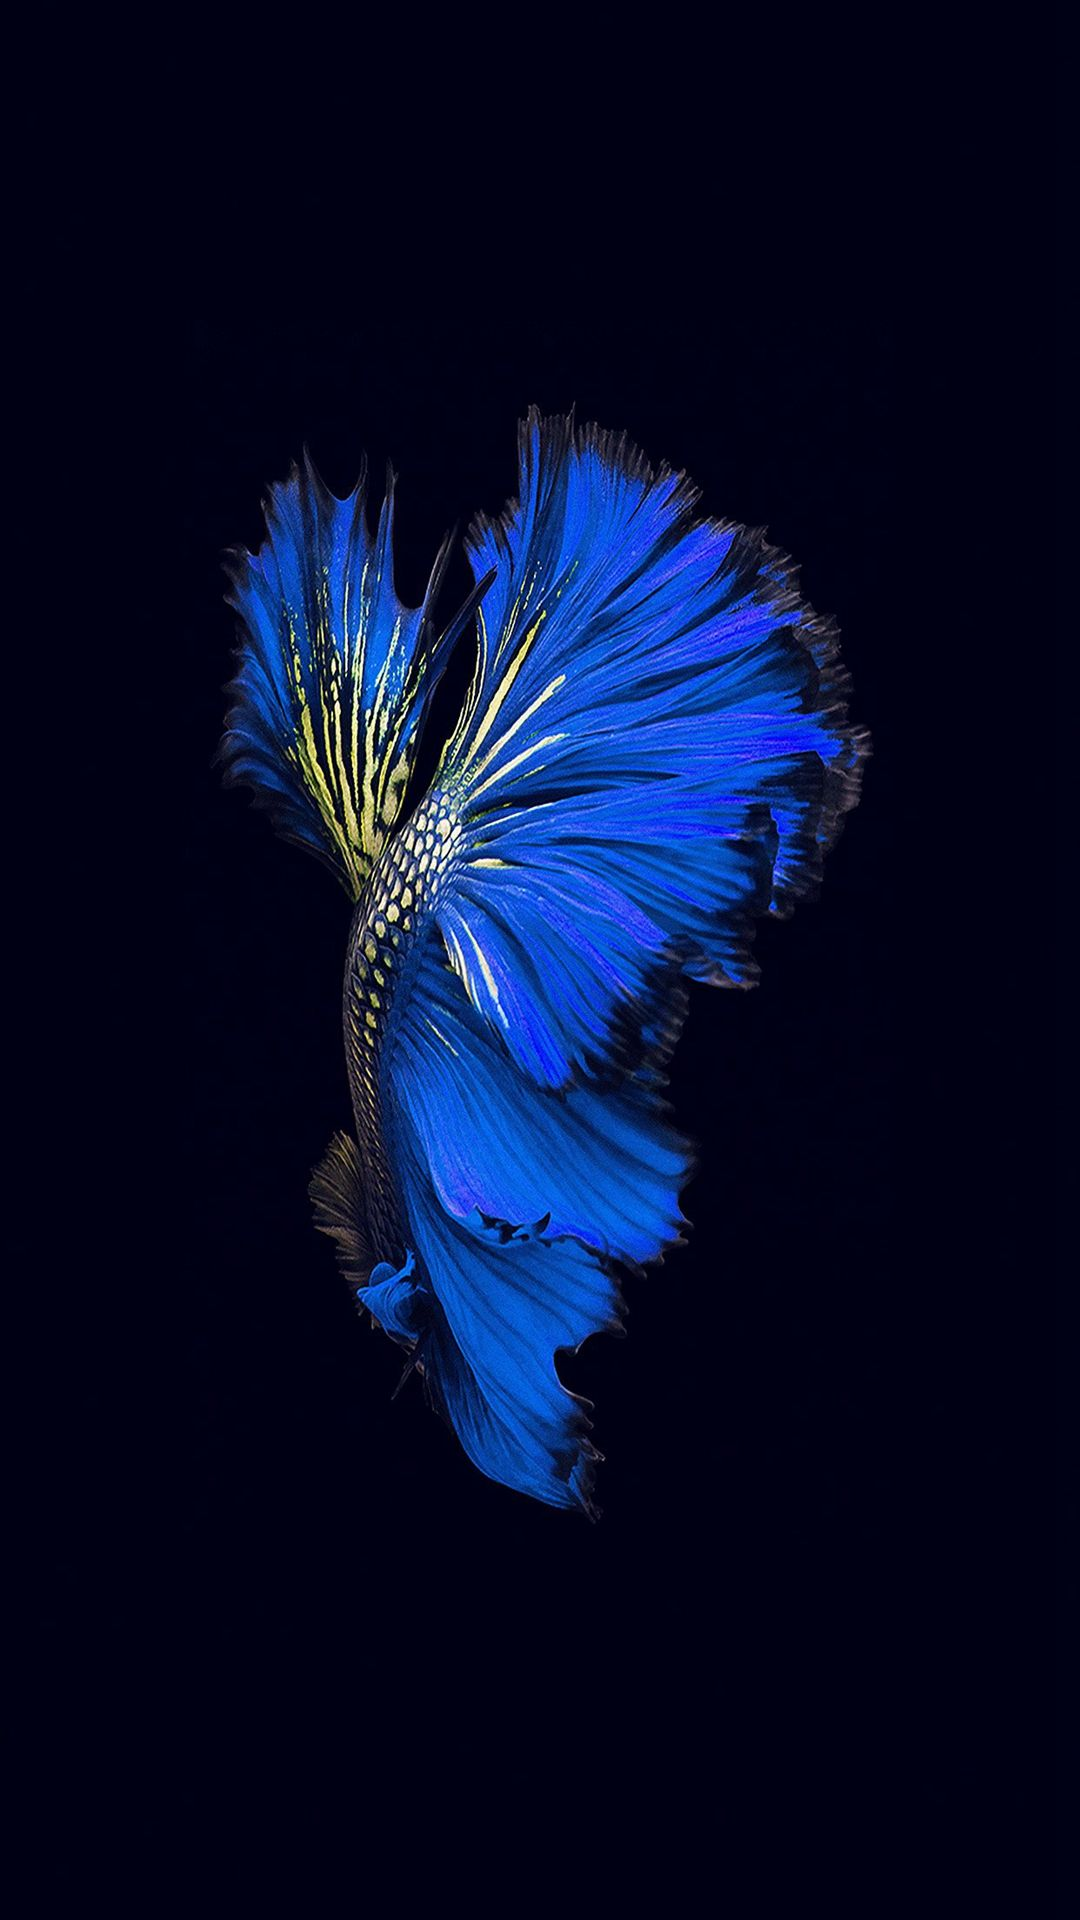 Wallpaper iphone cupang - Apple Ios9 Fish Live Background Dark Blue Iphone 6 Wallpaper